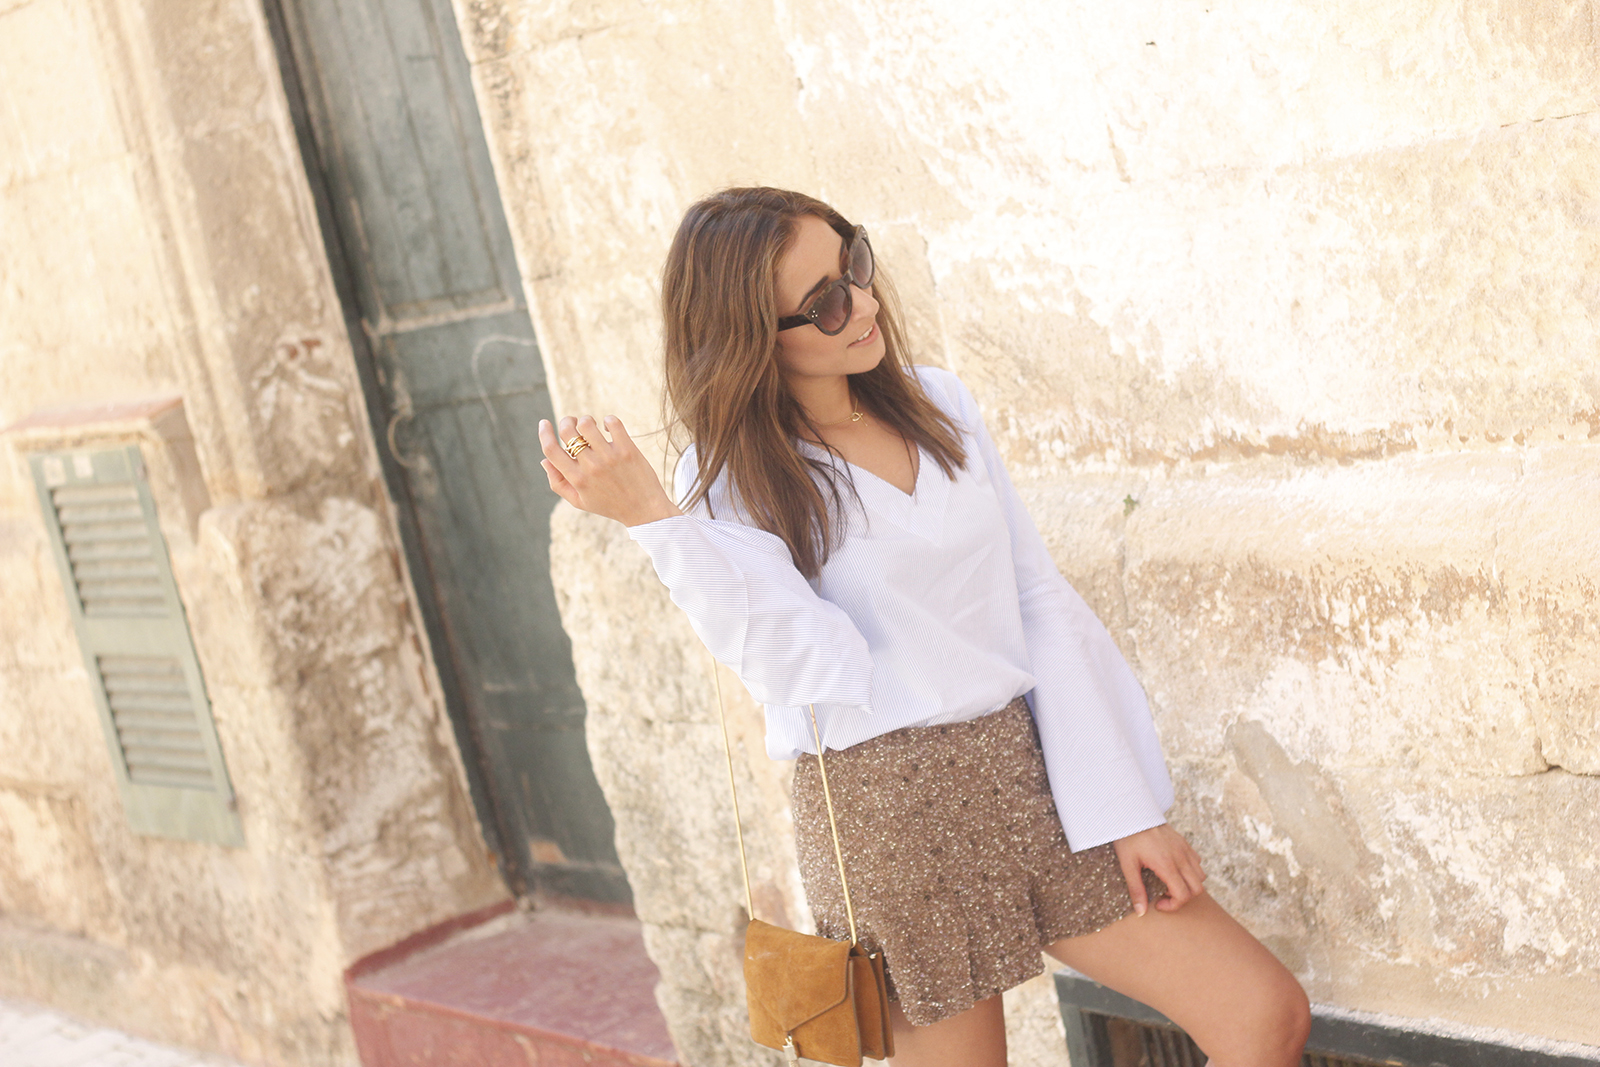 sequined shorts bell sleeves striped shirt summer flat sandals summer fashion outfit19